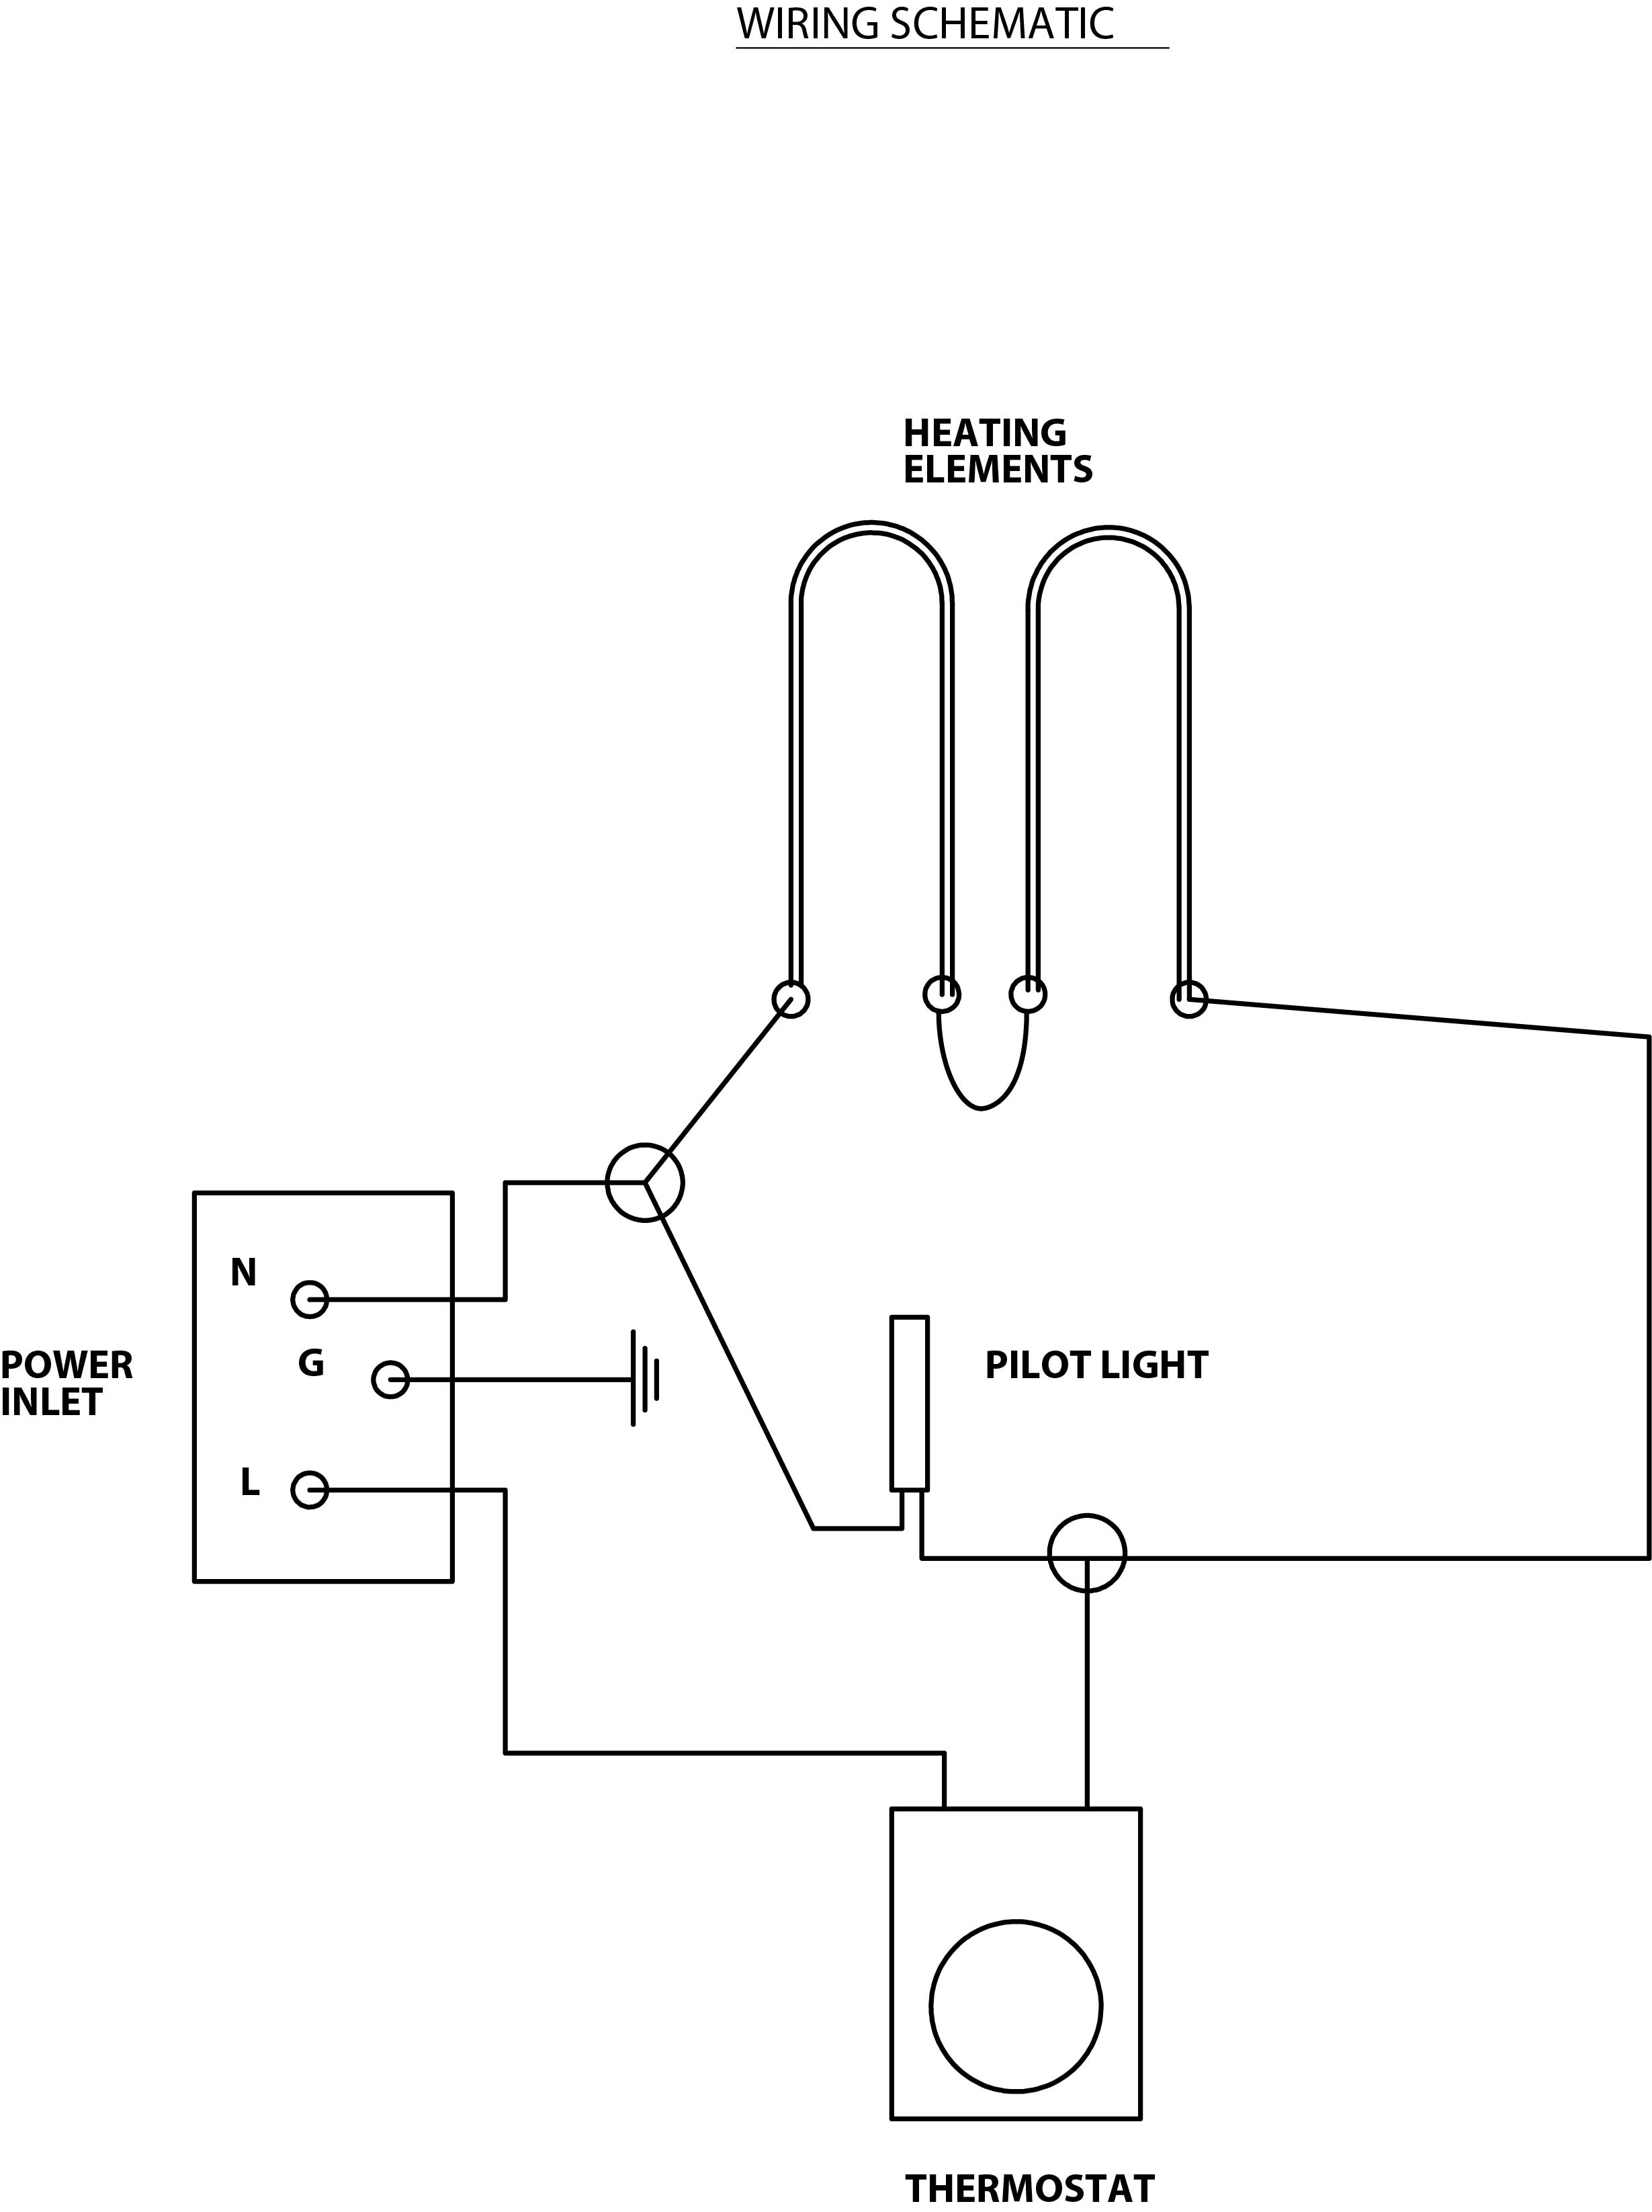 Wiring A Heating Element, Wiring, Free Engine Image For